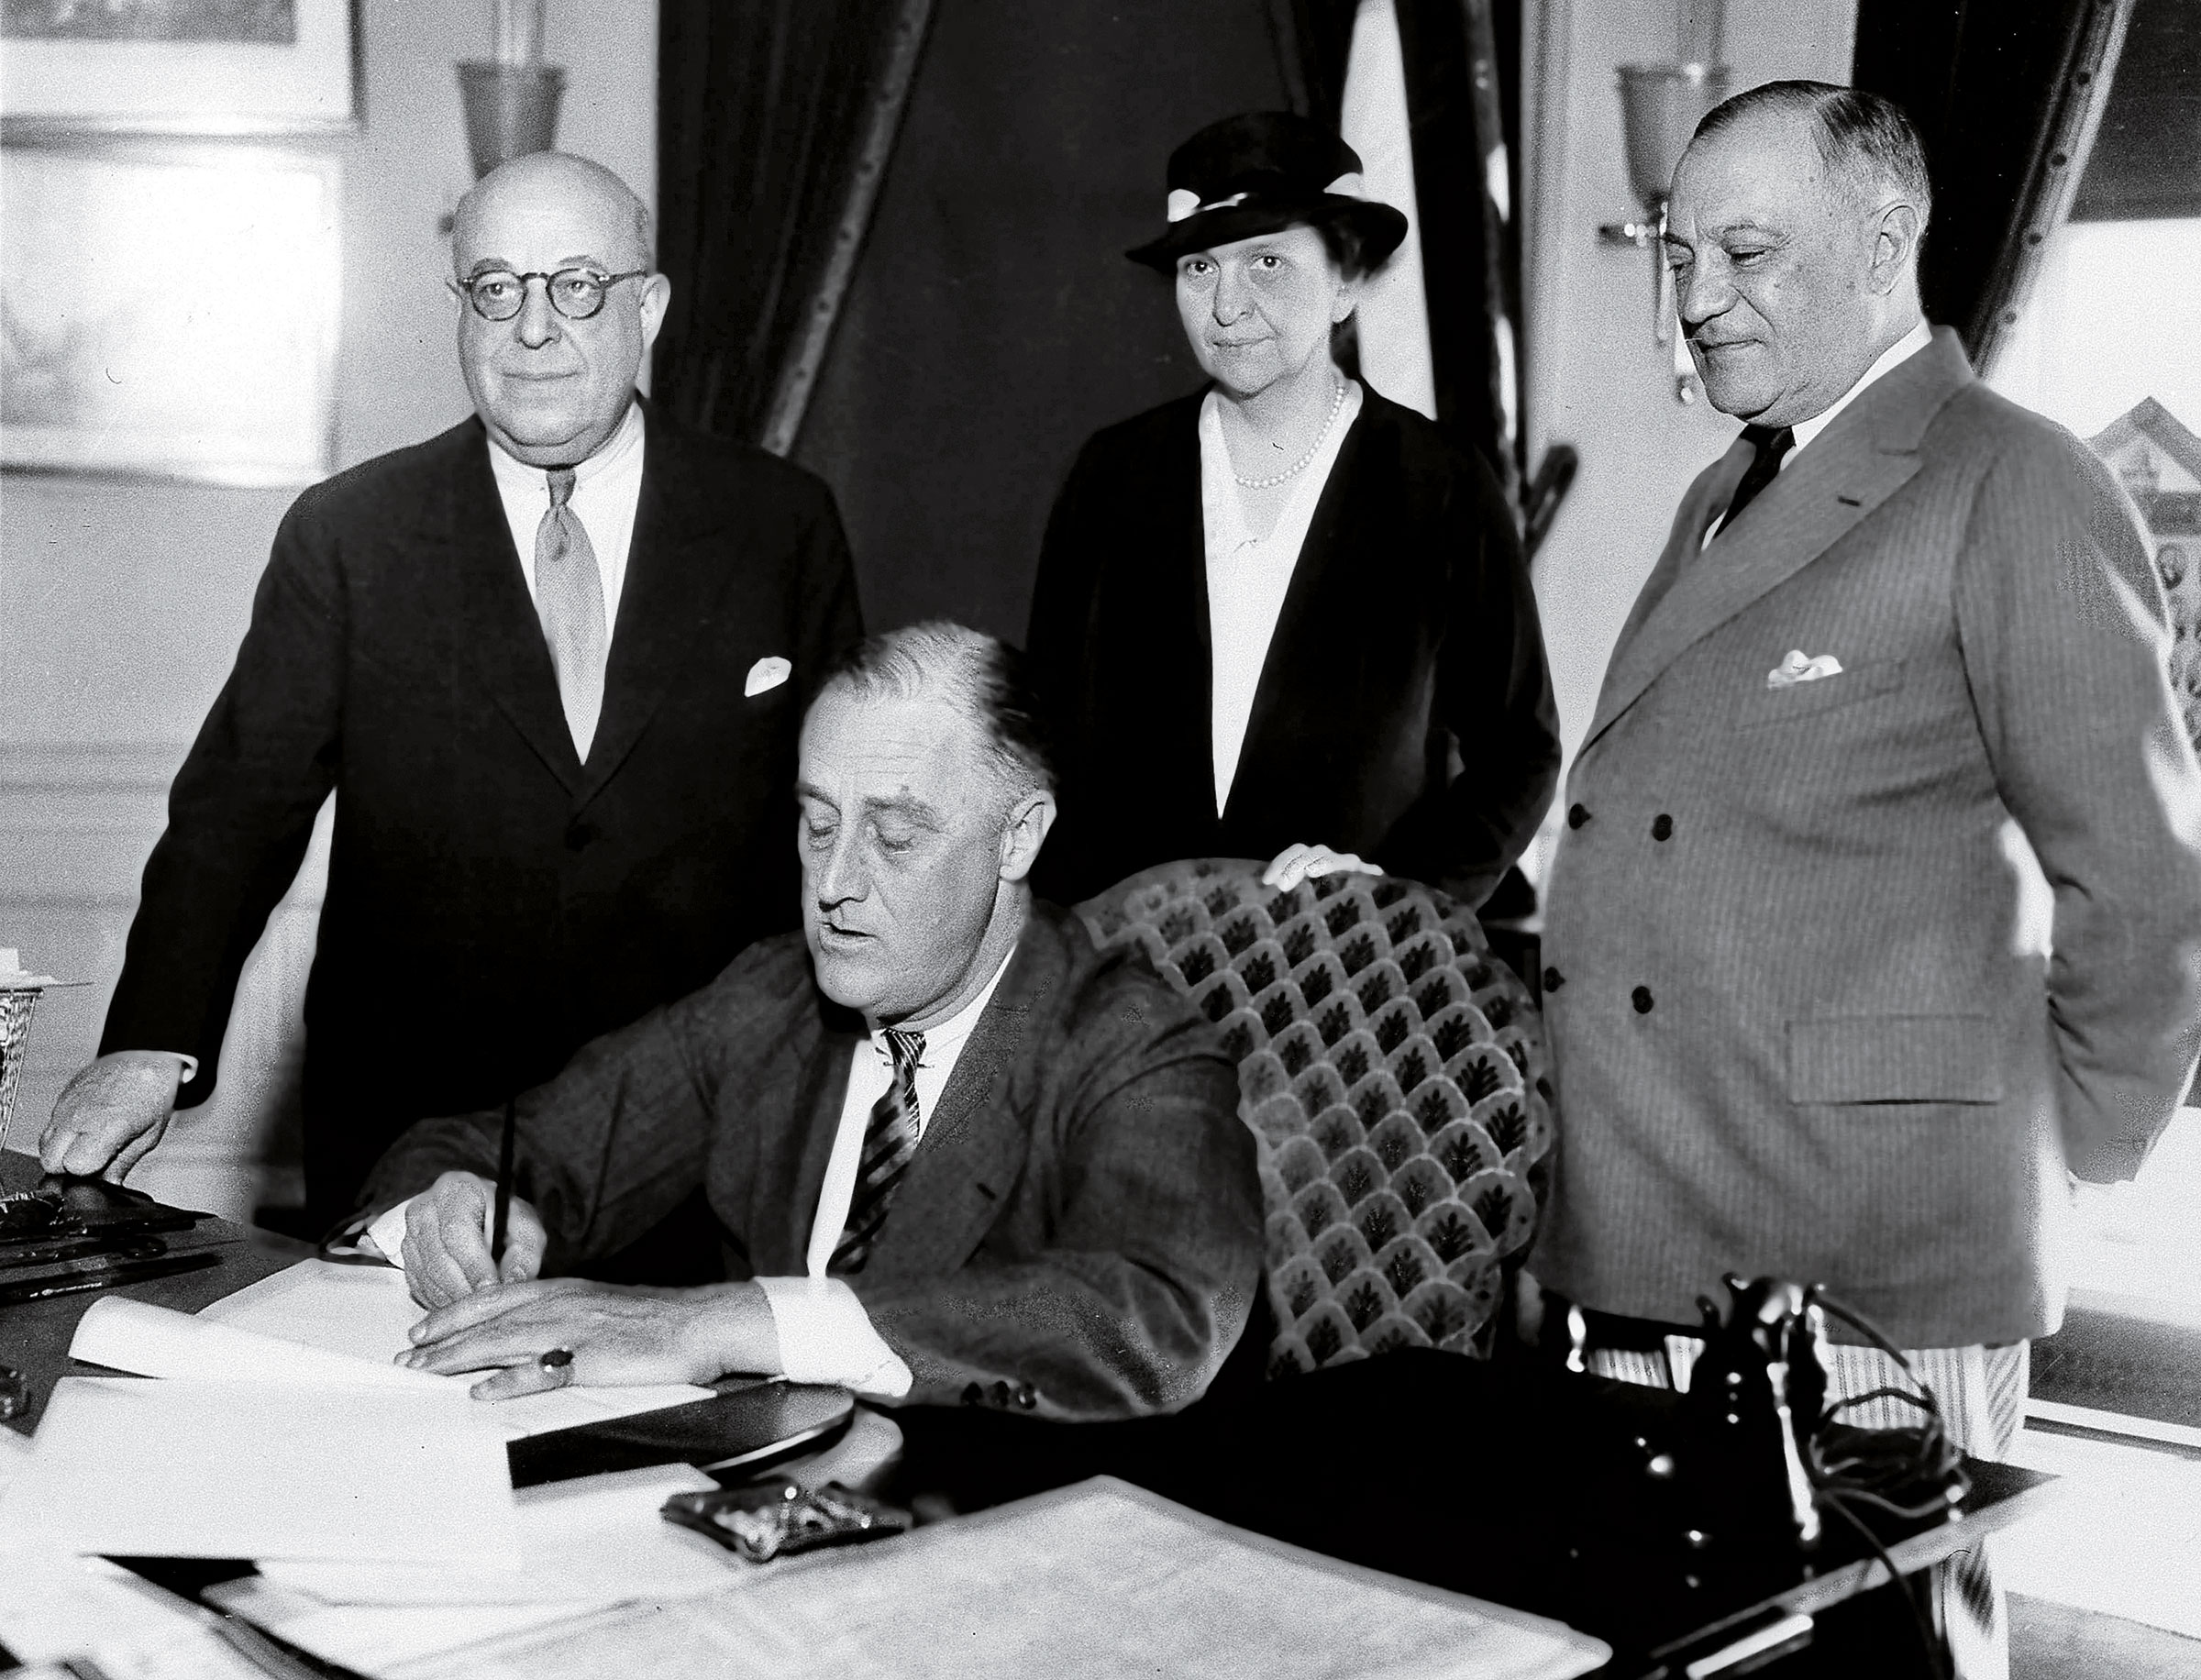 Perkins, behind President Roosevelt as he signs part of the New Deal into law on June 6, 1933.